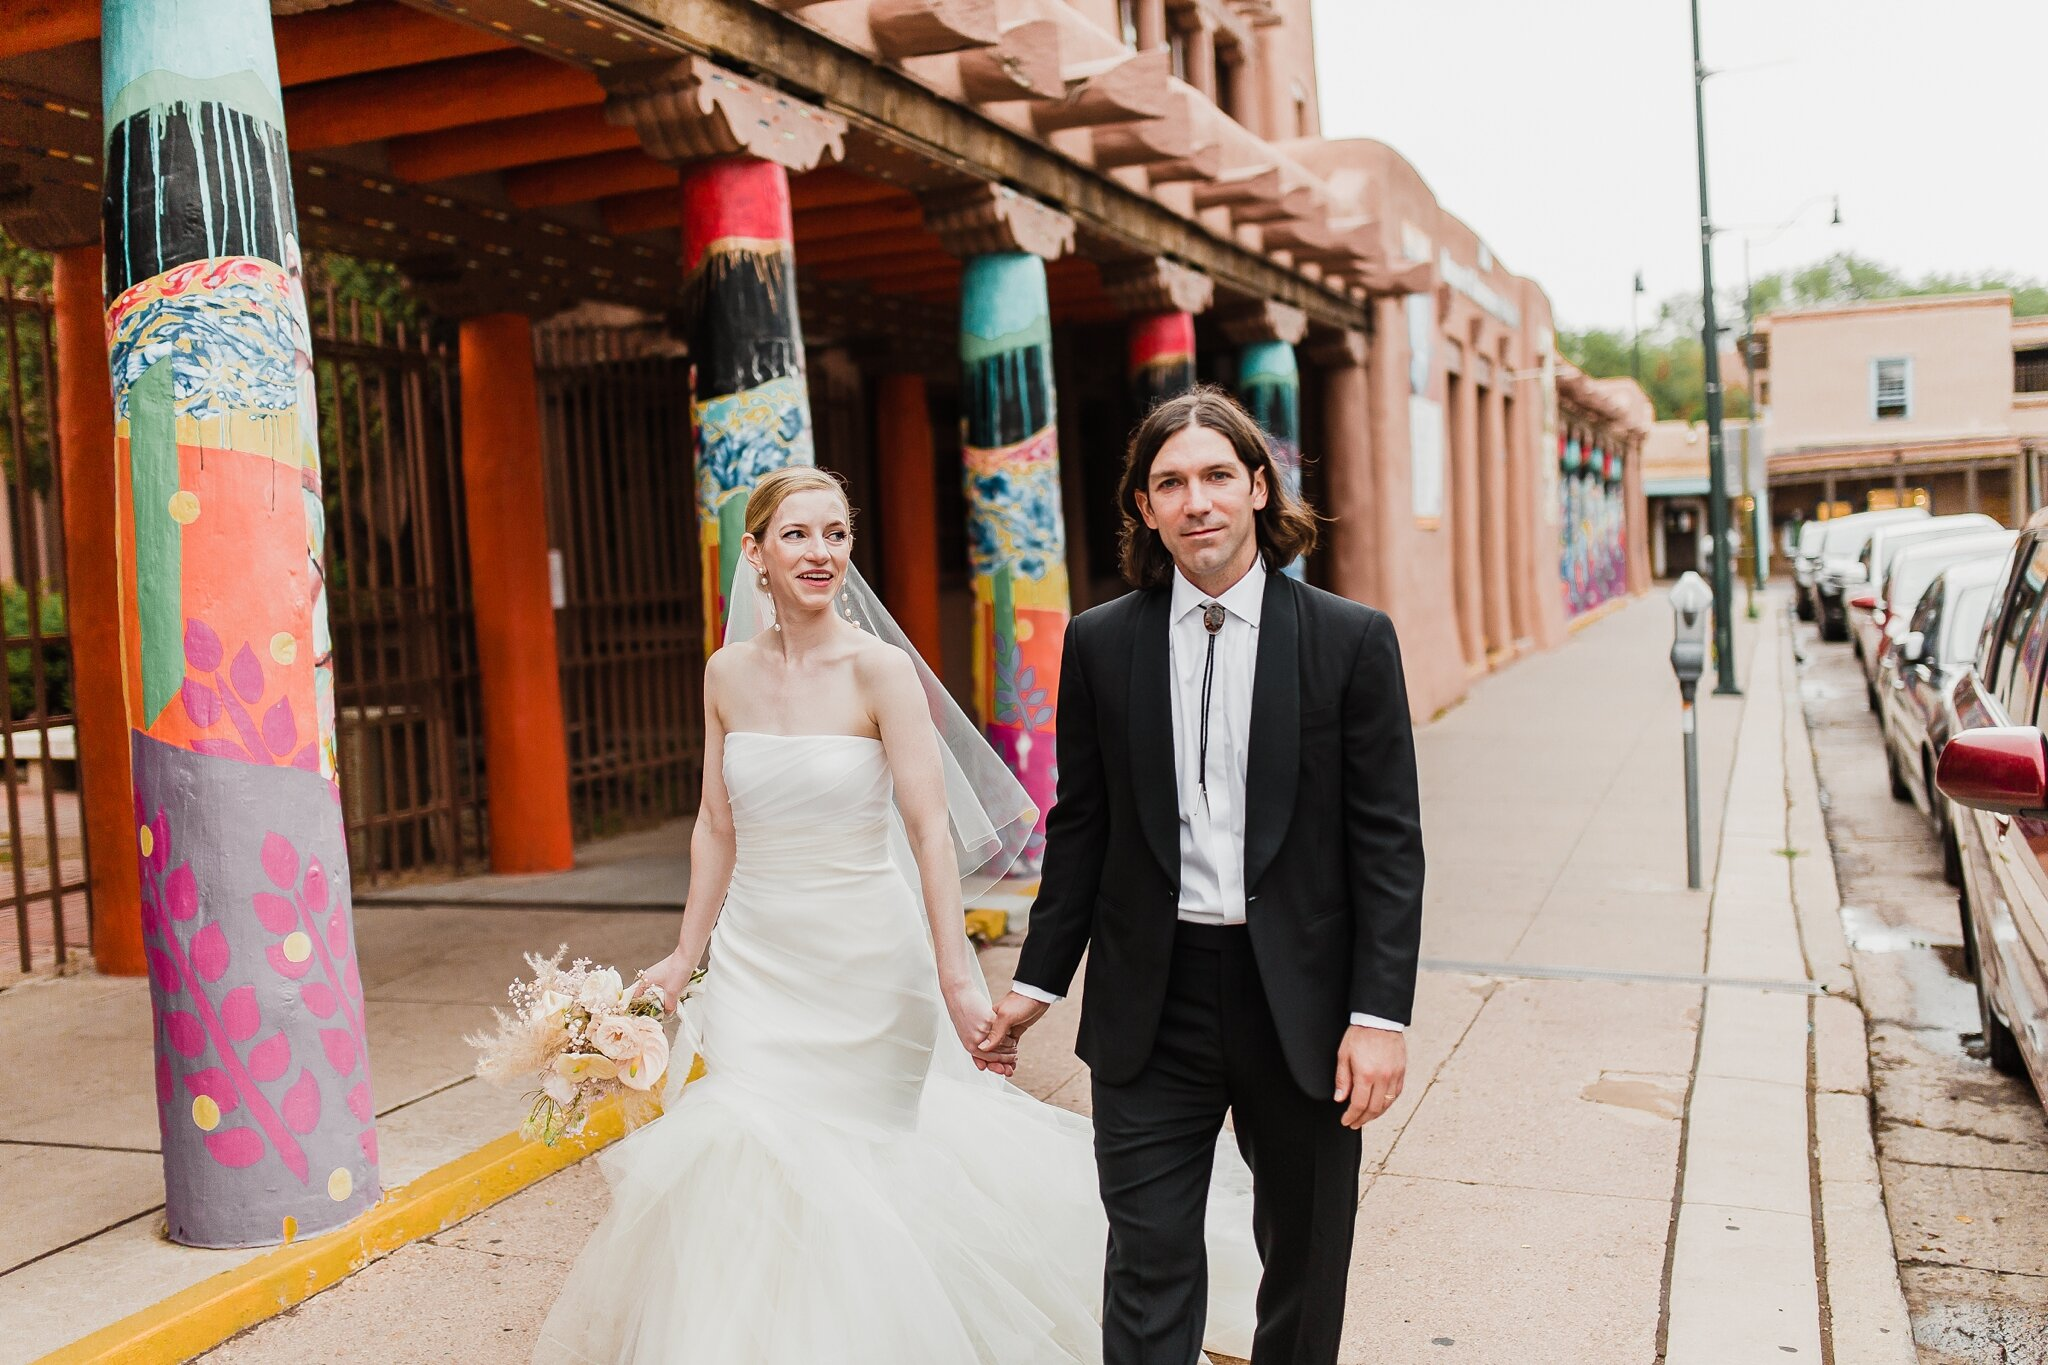 Alicia+lucia+photography+-+albuquerque+wedding+photographer+-+santa+fe+wedding+photography+-+new+mexico+wedding+photographer+-+new+mexico+wedding+-+la+fonda+wedding+-+la+fonda+on+the+plaza+-+santa+fe+wedding+-+brooklyn+bride_0090.jpg